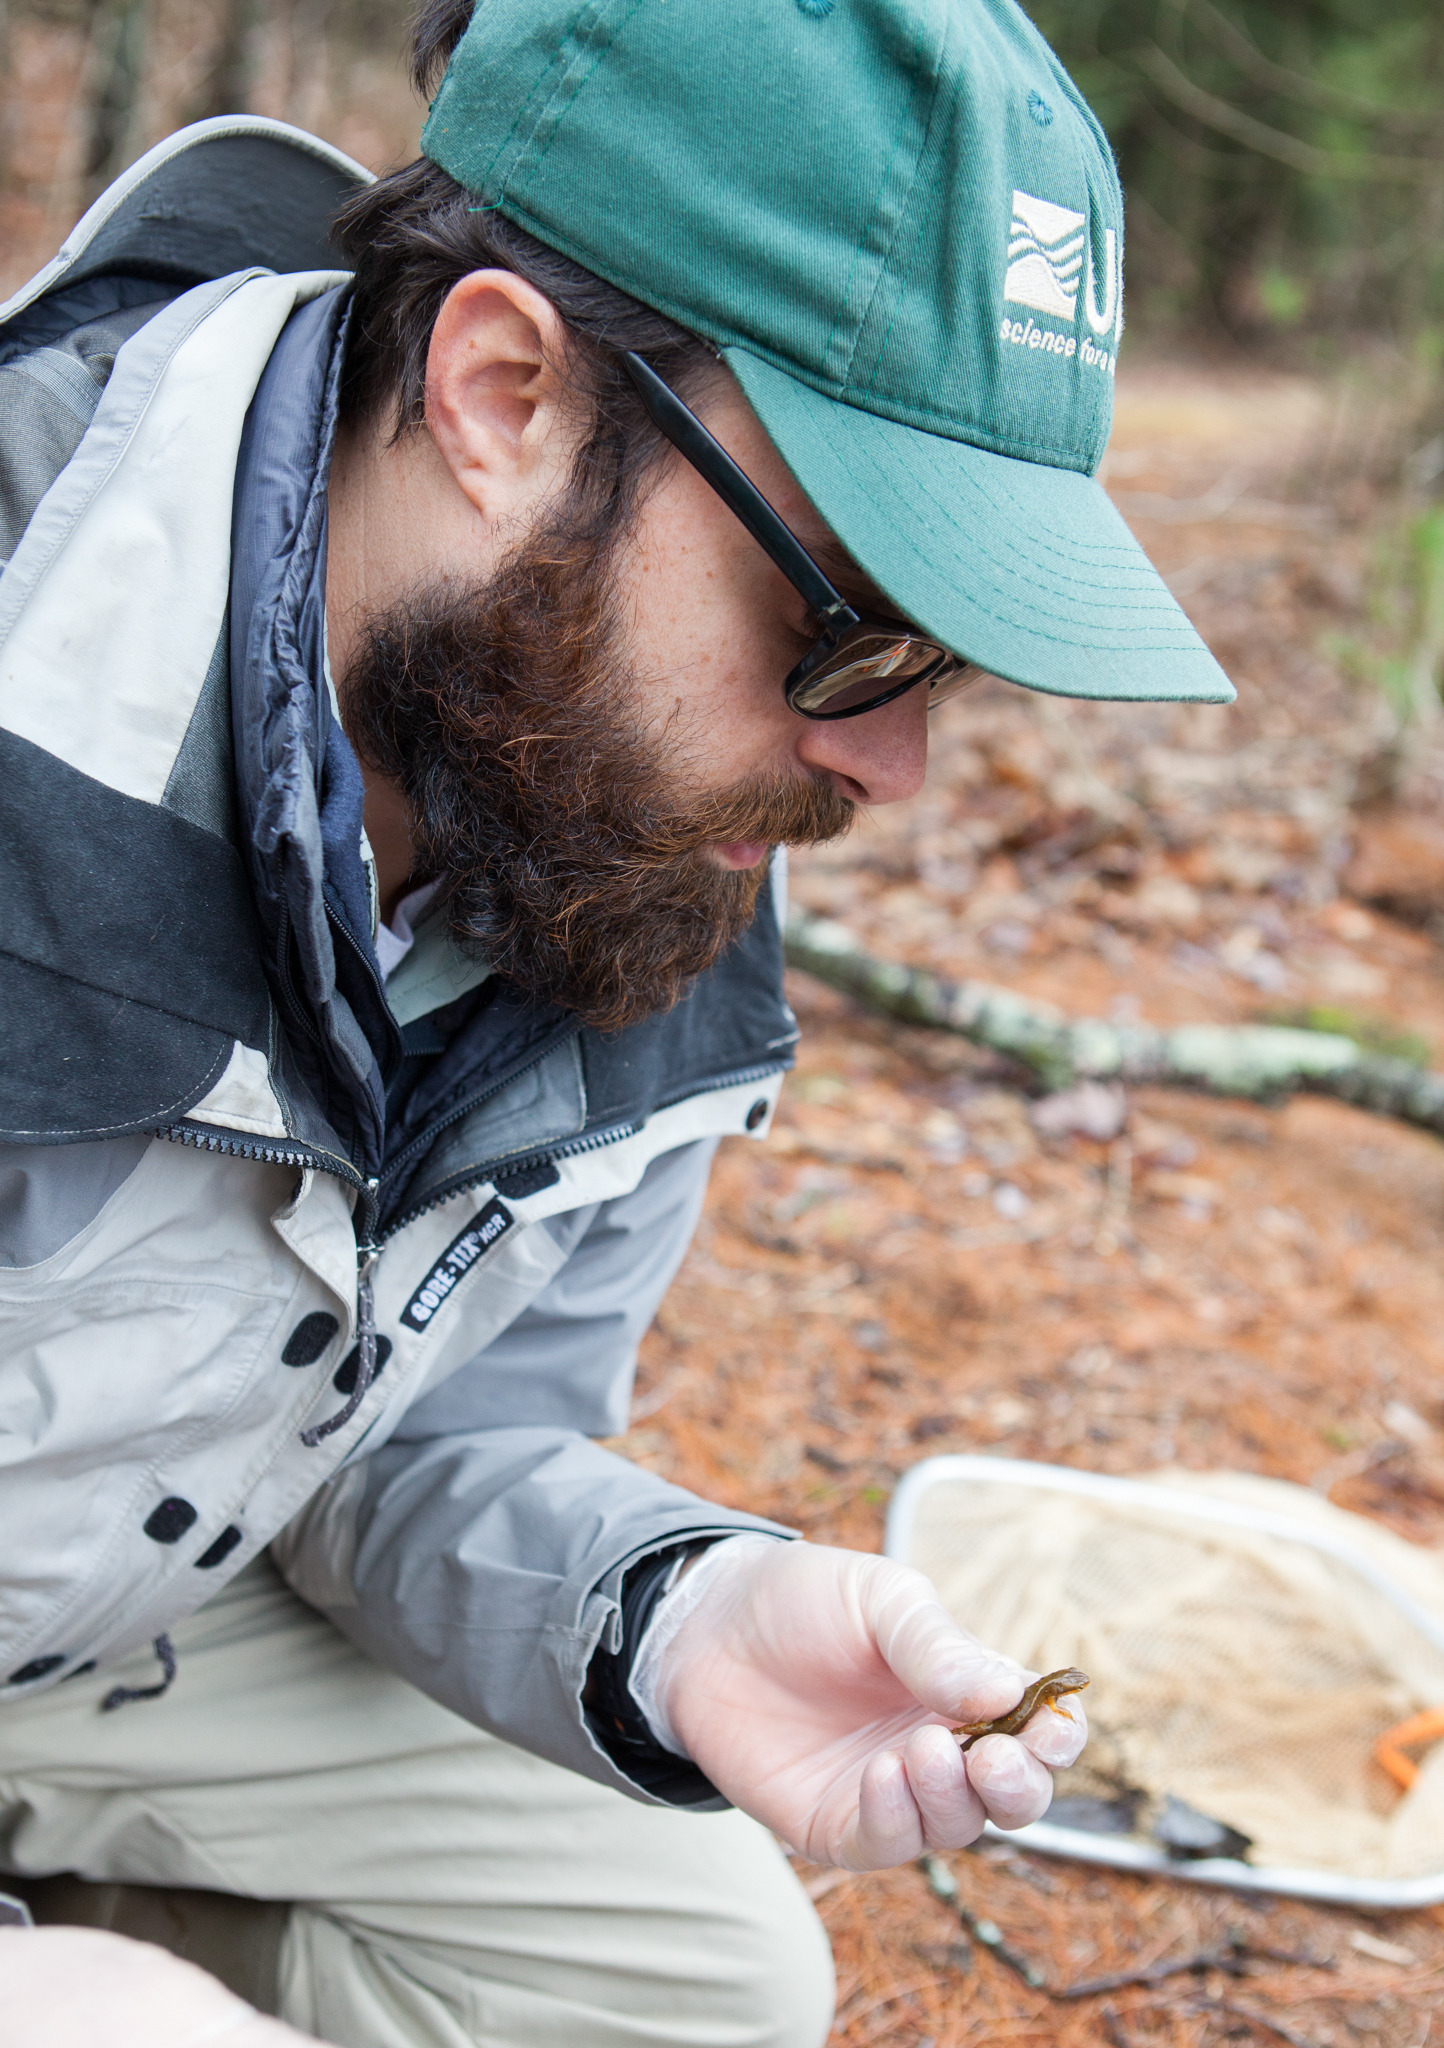 Evan Grant, a wildlife biologist with the United States Geological Survey, examines a red-spotted newt (Notophthalmus viridescens) for any signs of Bsal infection. Photograph by Geoffrey Giller